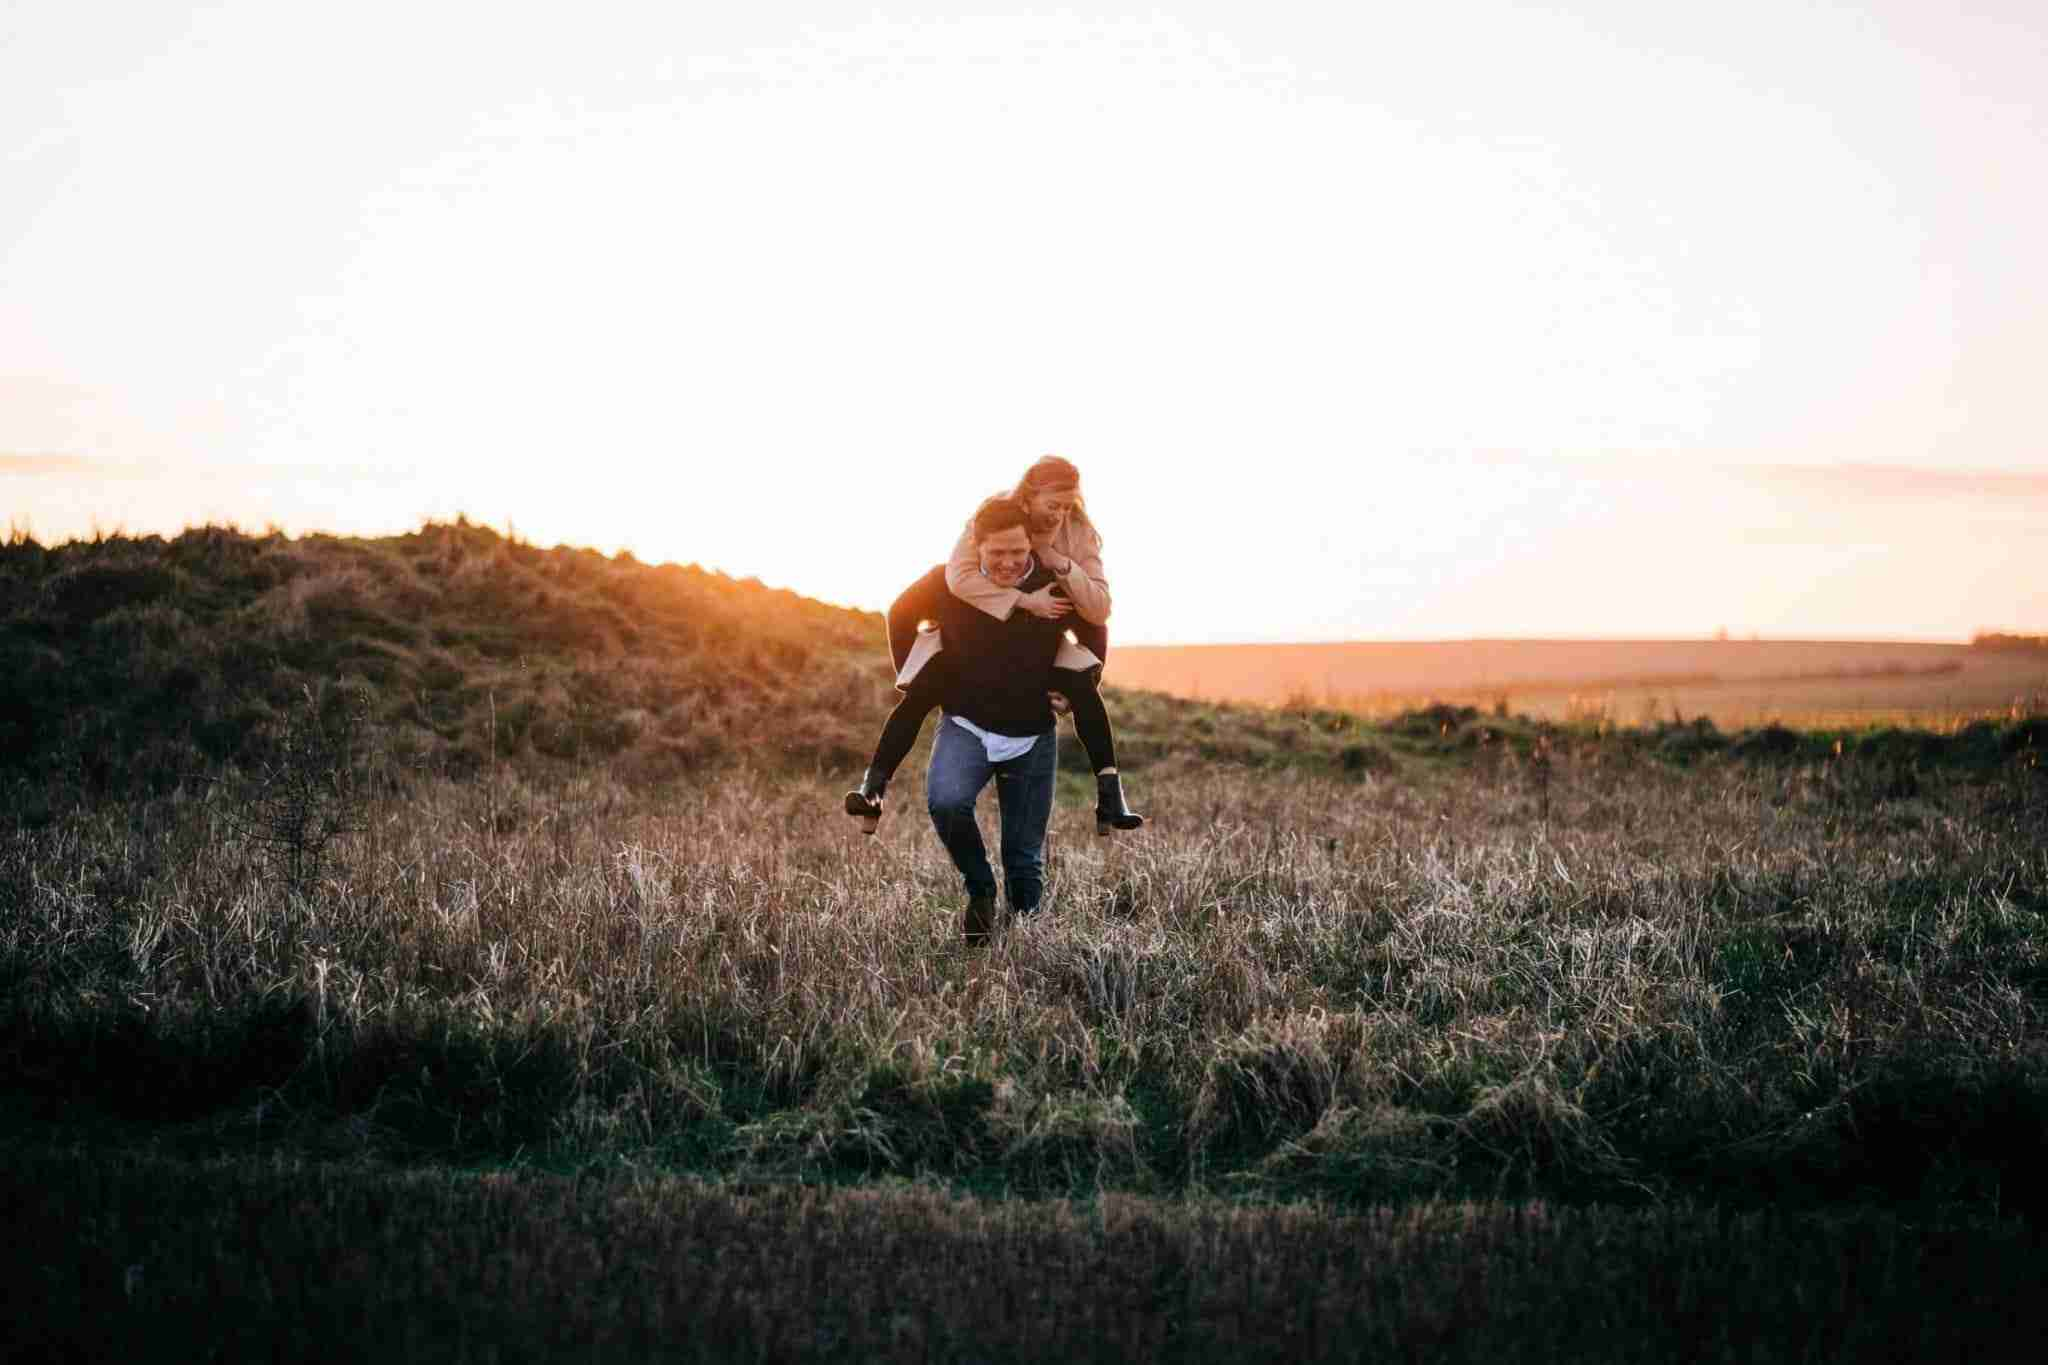 An engagement portrait of a couple at sunset